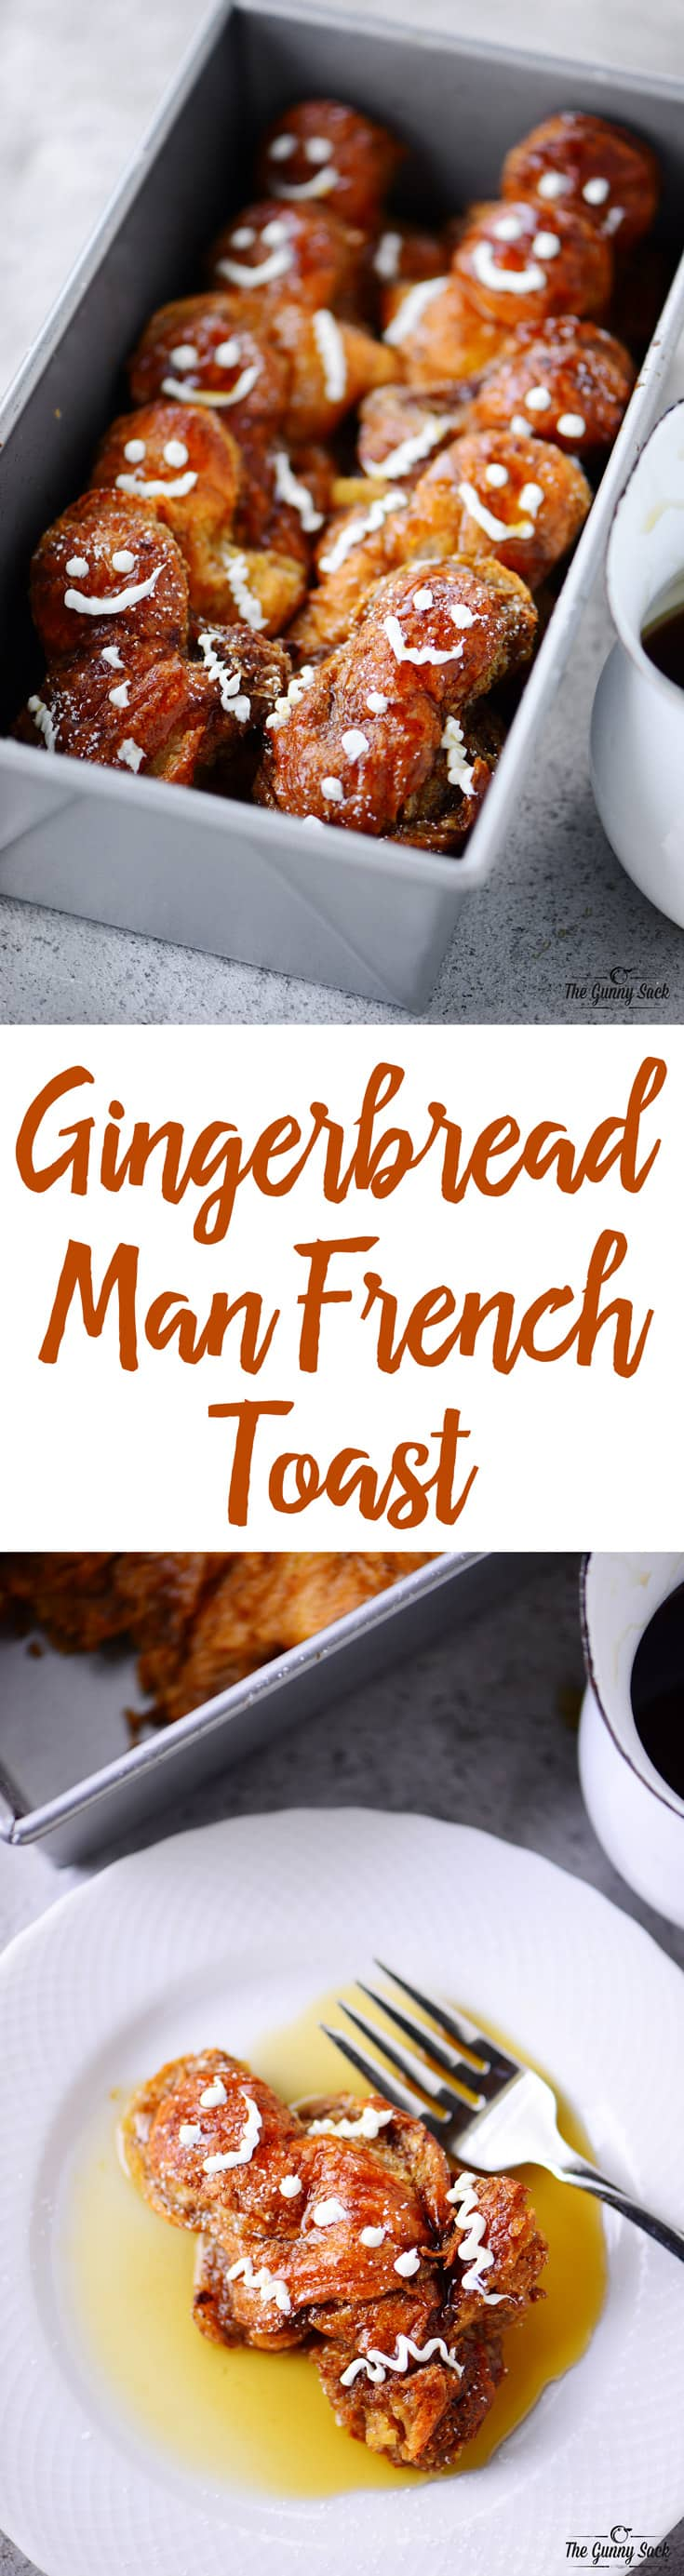 This Gingerbread Man French Toast recipe is perfect for Christmas morning or for a fun weekend breakfast during the holiday season. Your kids will love the idea of eating gingerbread men for breakfast! #holidaybrunch #breakfast